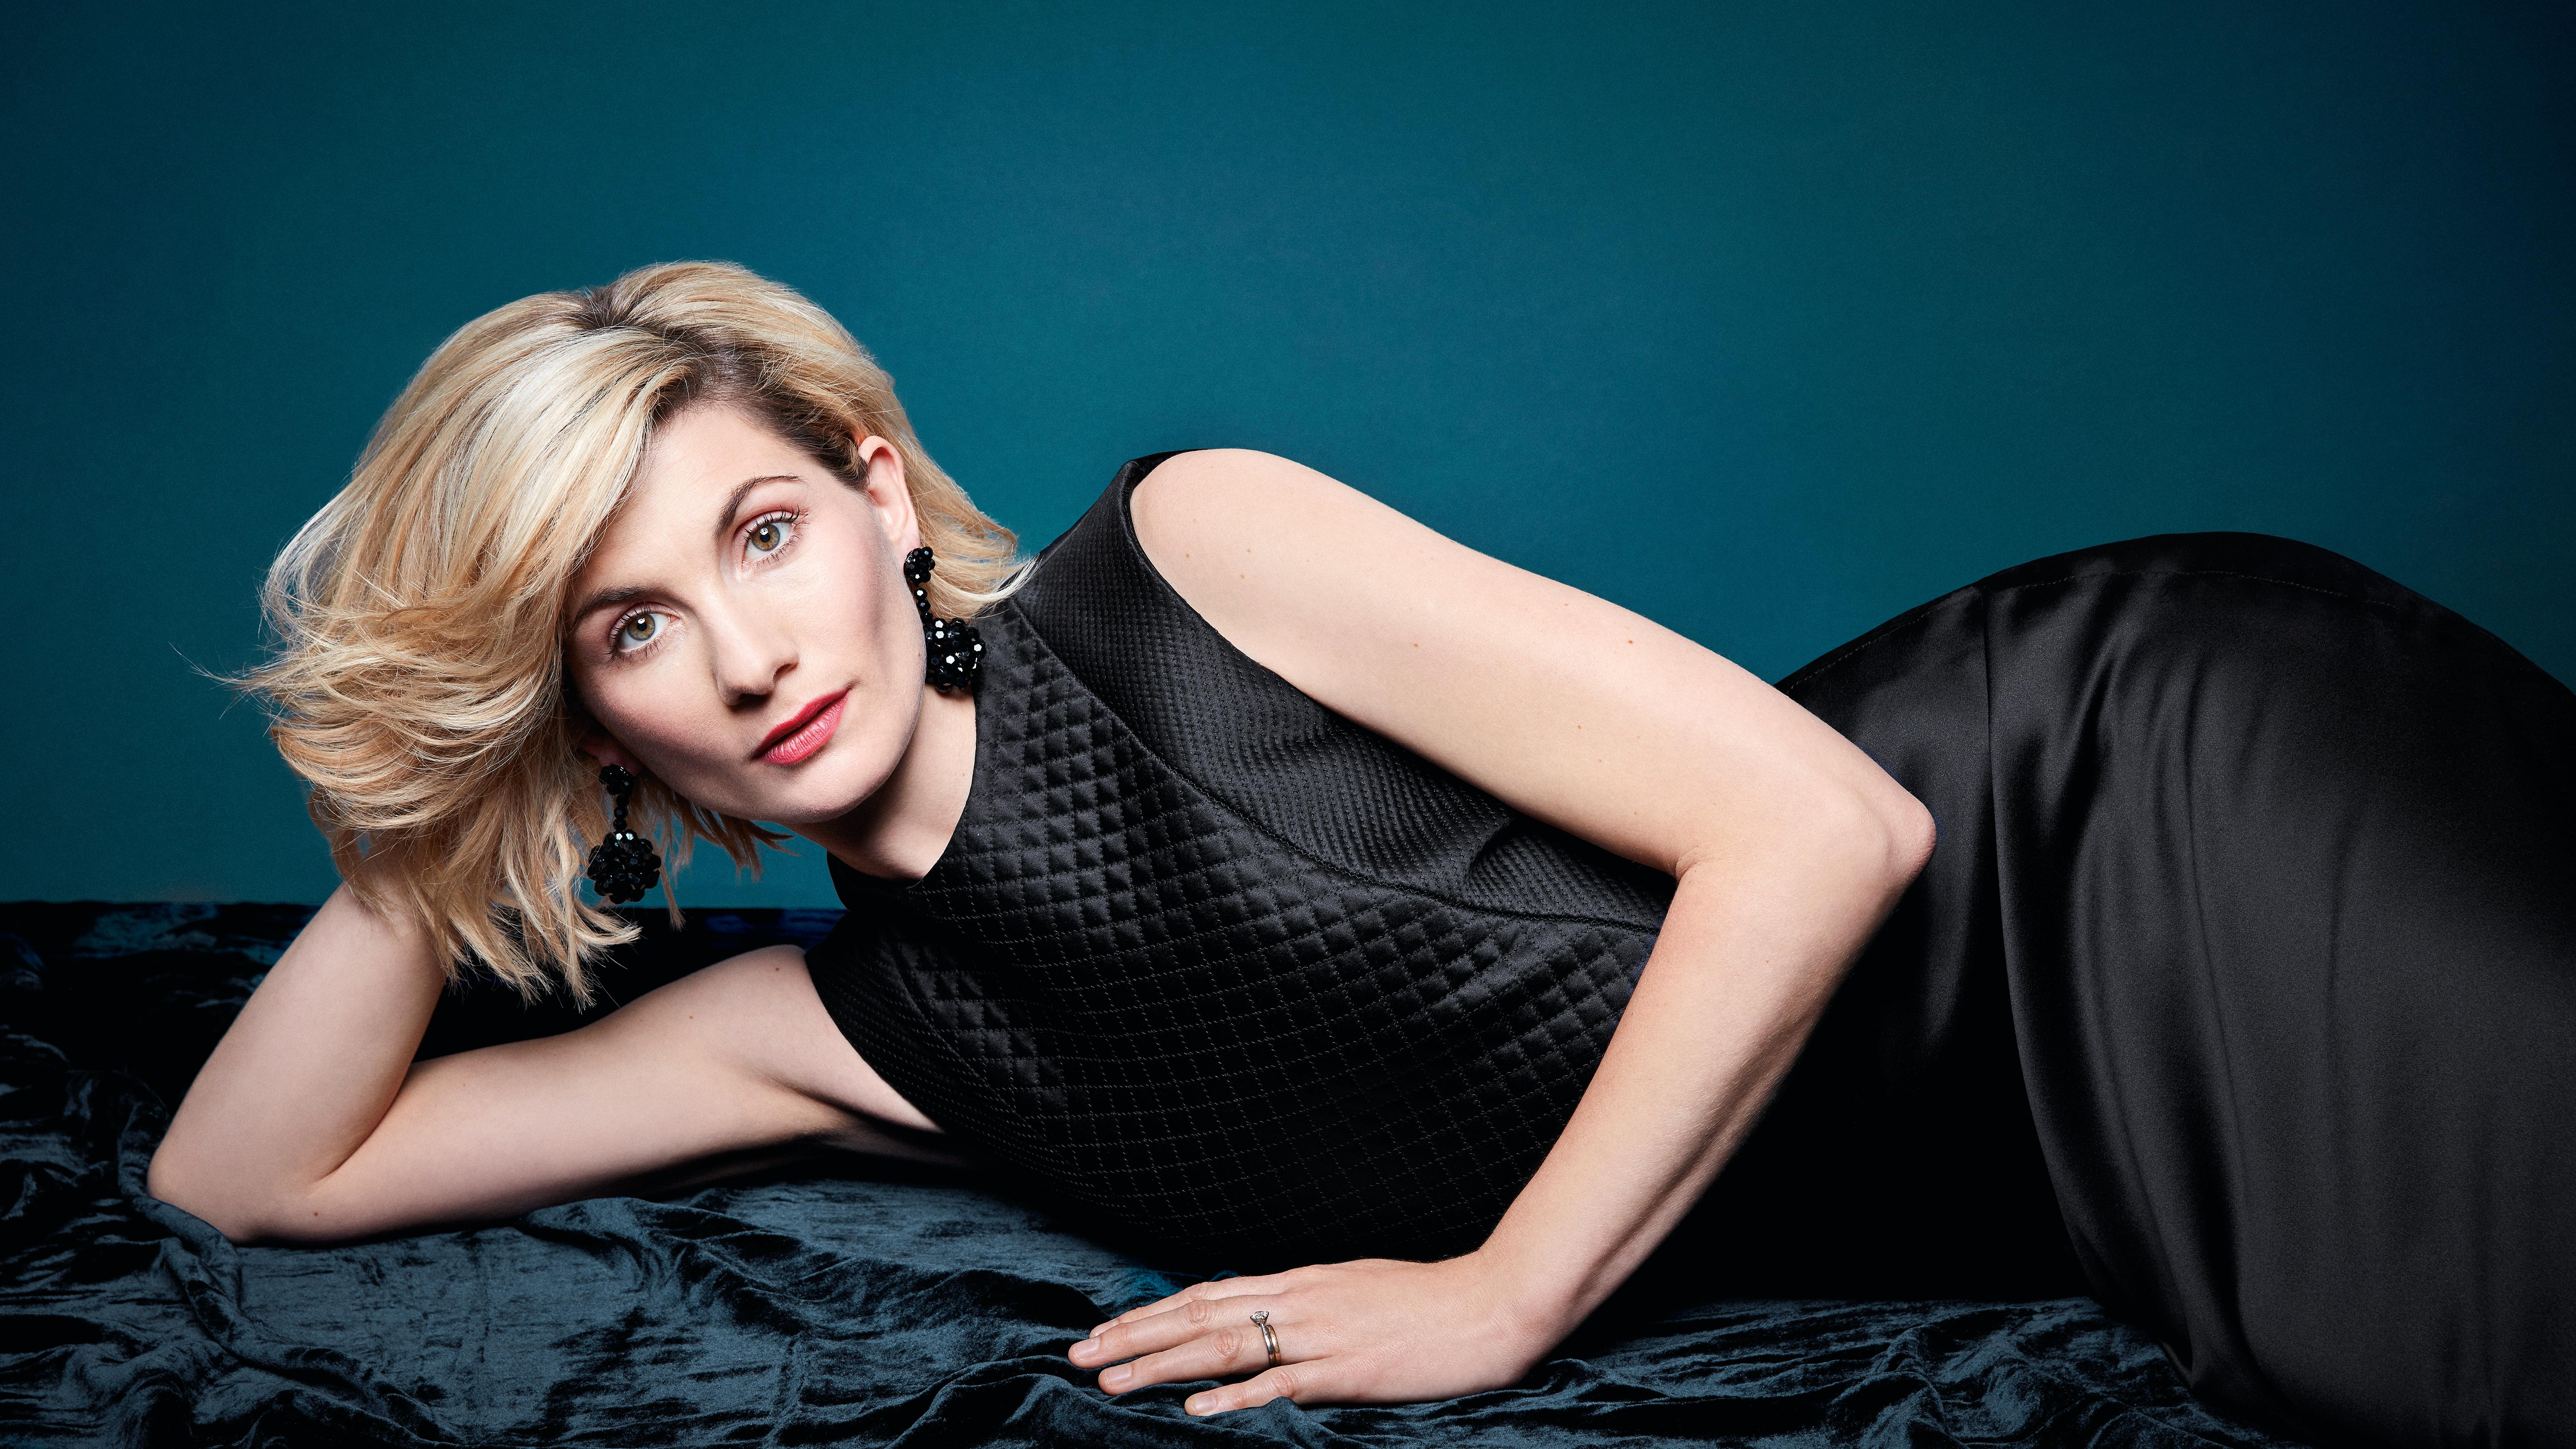 1920X1080 Jodie Whittaker 2018 5K Laptop Full Hd 1080P Hd 4K Wallpapers, Images -2776